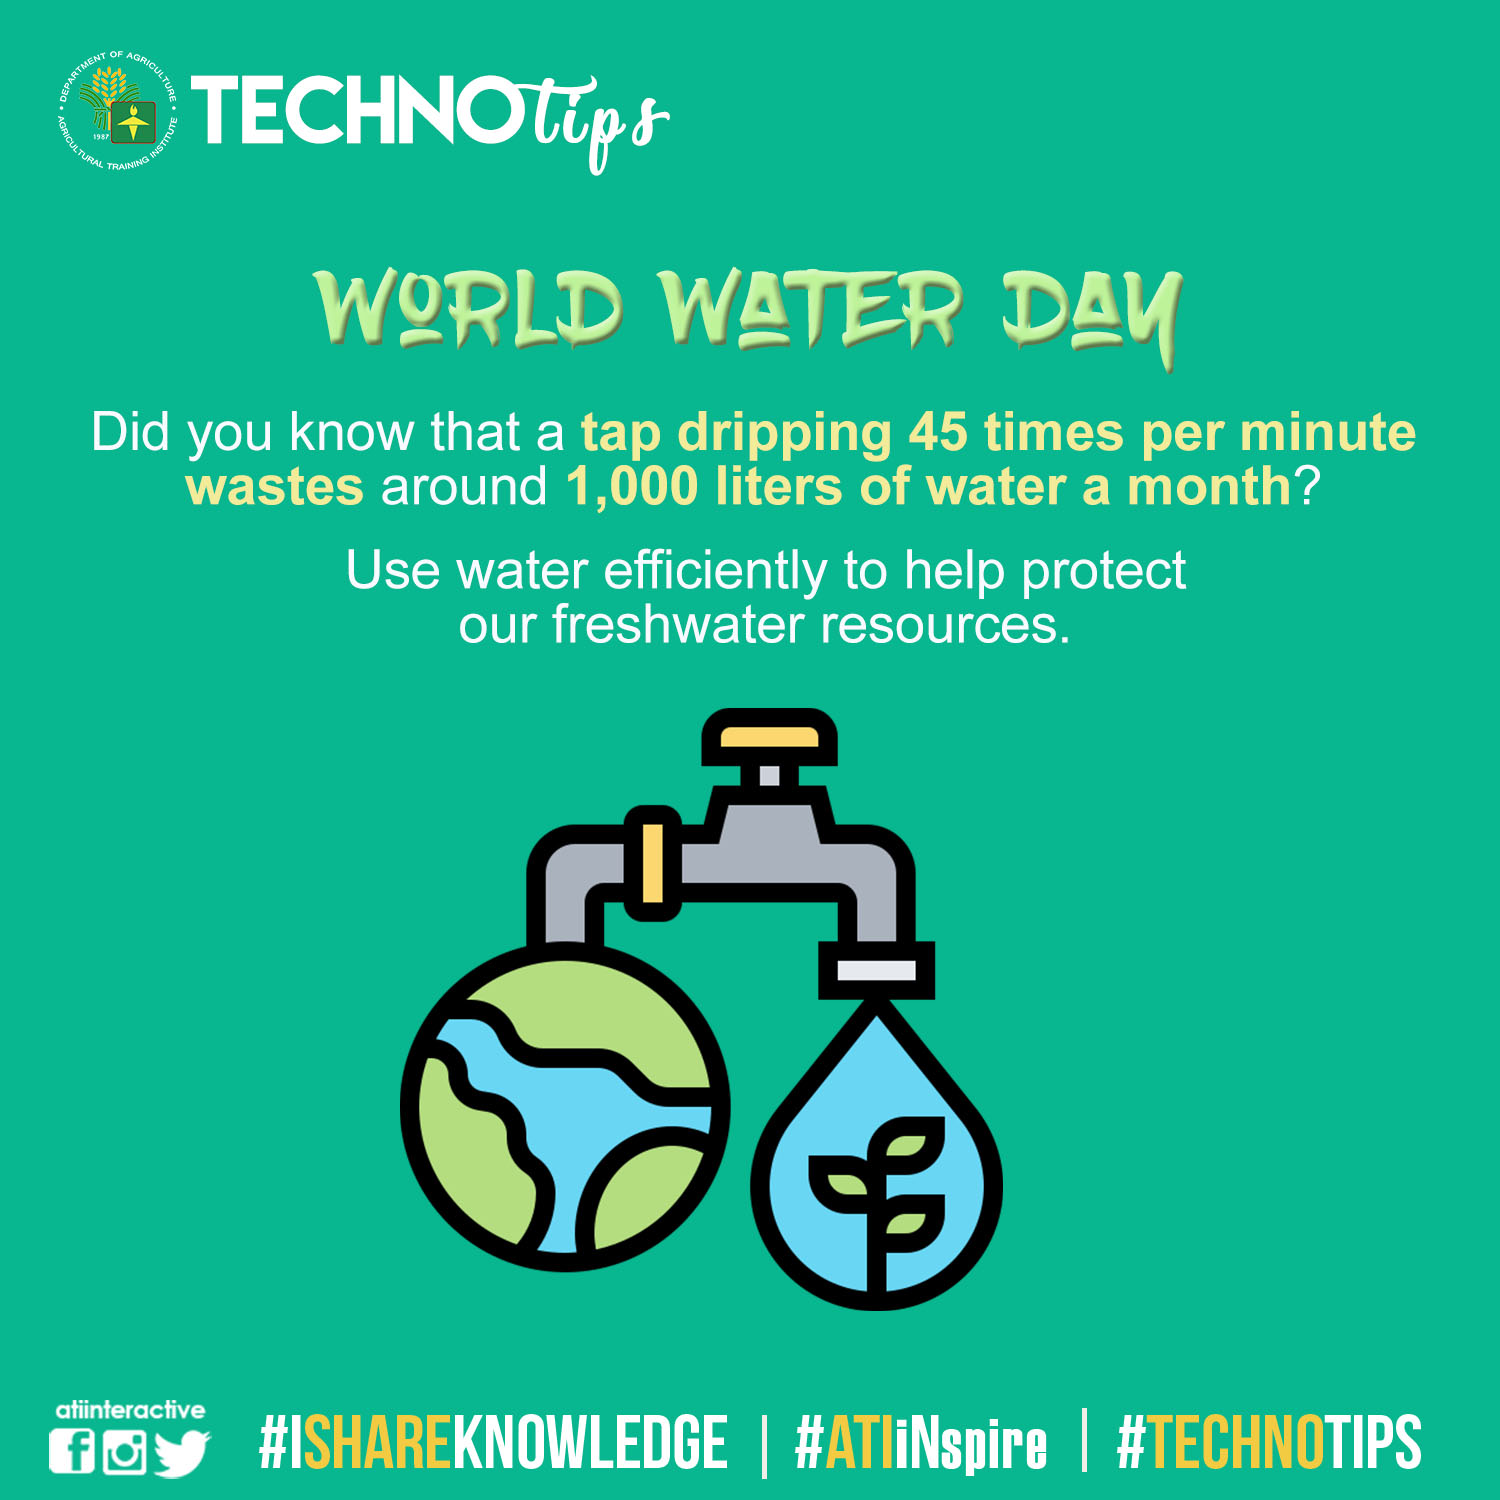 Technotips: World Water Day